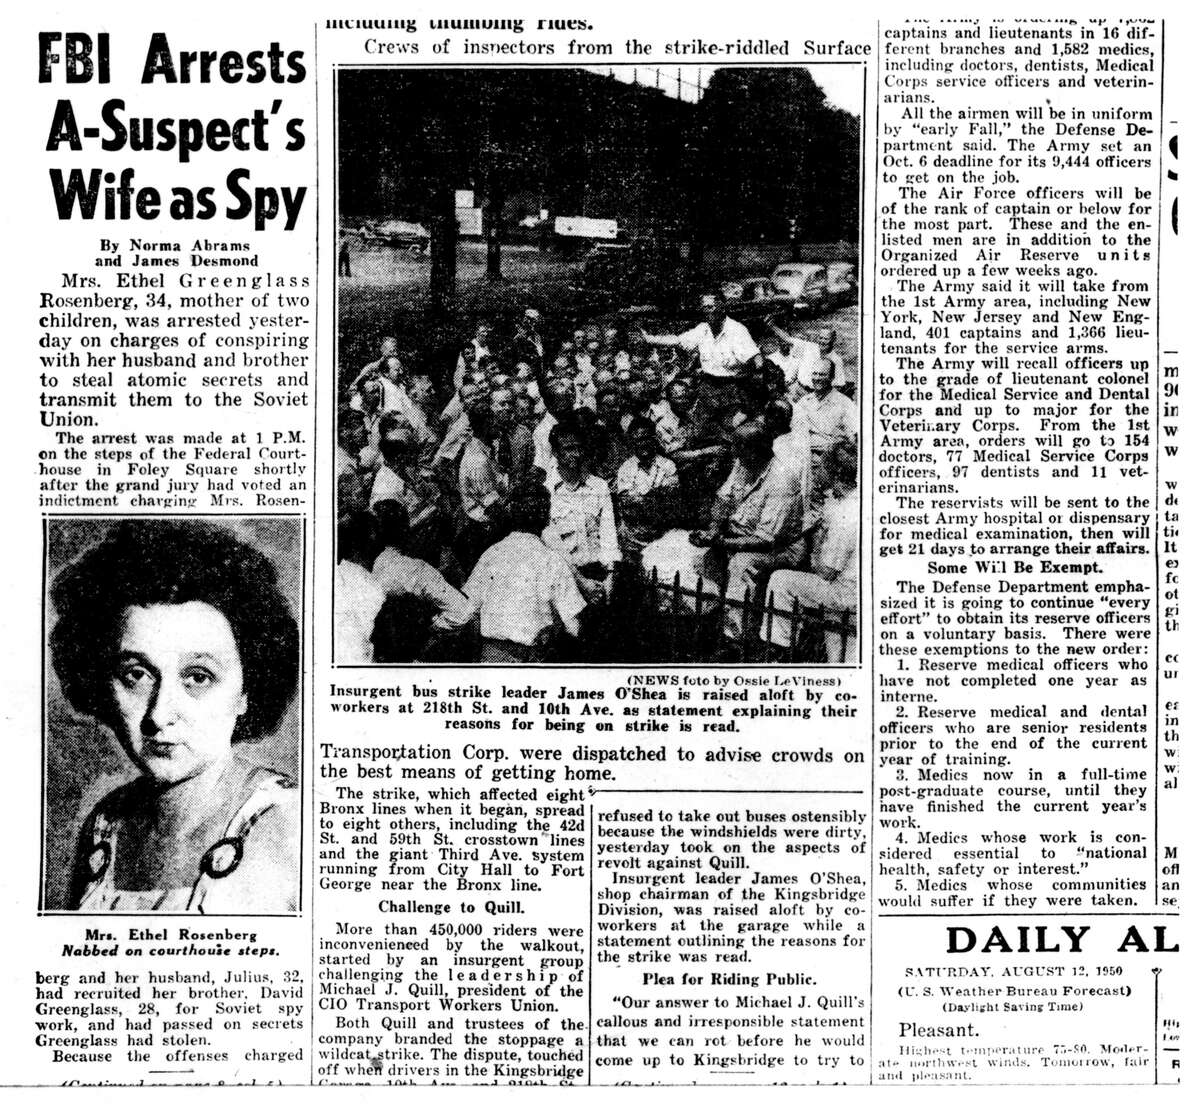 Rosenberg spies steal nuclear secrets 1950 American citizens Ethel and Julius Rosenberg were indicted in August 1950 on charges of espionage for giving American nuclear secretes to the Soviet Union. They were credited with helping the Soviets build their first atomic bomb, and said they believed that the weapon was too powerful for only one nation to possess. They were executed by electric chair in 1953.